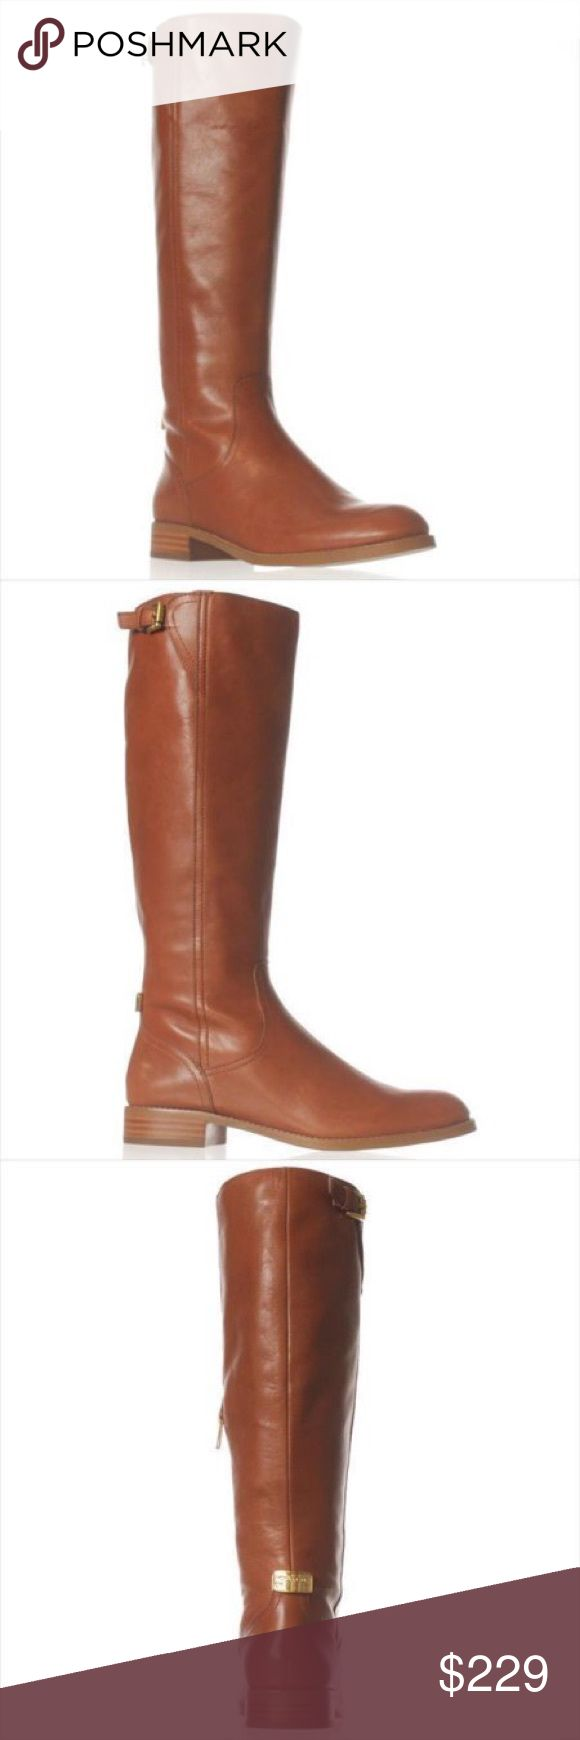 COACH Mirriam Riding Boots Cinnamon A6851 Brand: Coach Heel: 1.00 inches (2.54 CM) Material: Leather Color: Cinnamon Toe-Shape: Round Toe The boot shaft measures approximately 15.50 inches (39.37 CM) tall and has an opening of 15.50 inches (39.37 CM) Coach Shoes